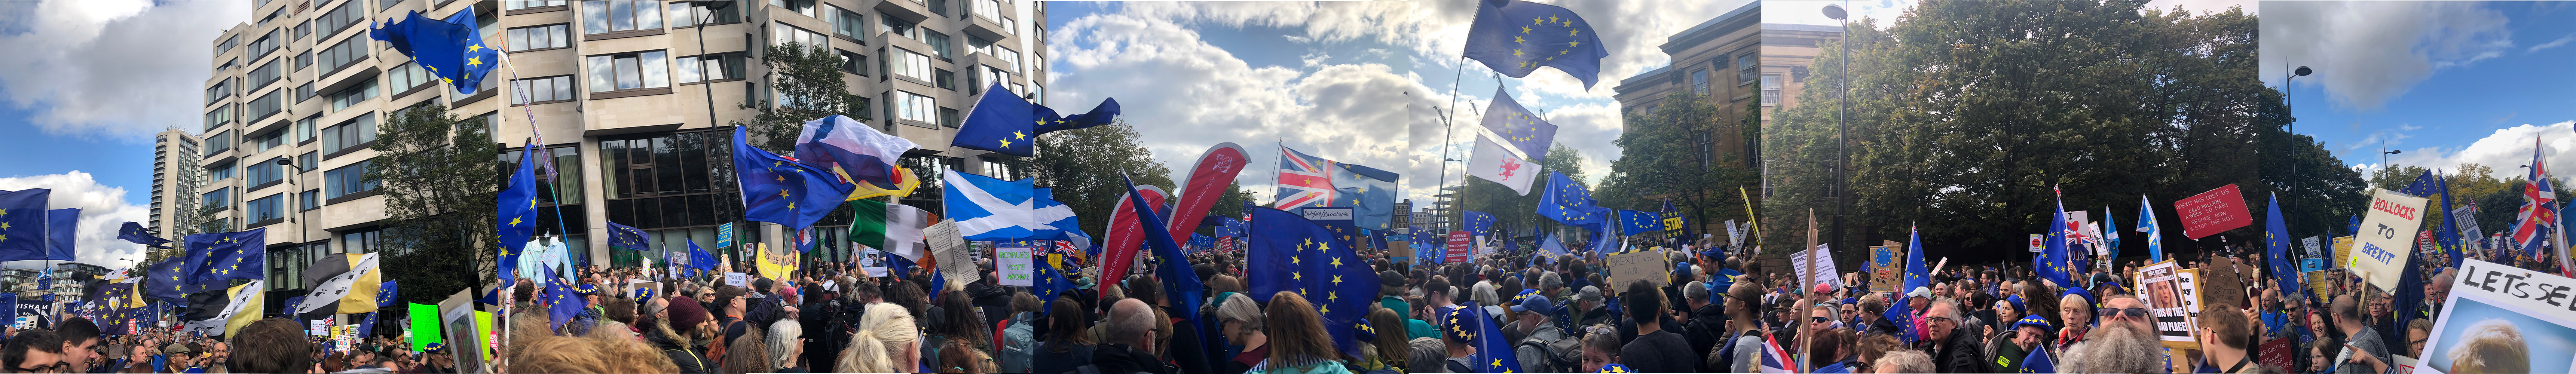 People's Vote march in London on 19 October 2019